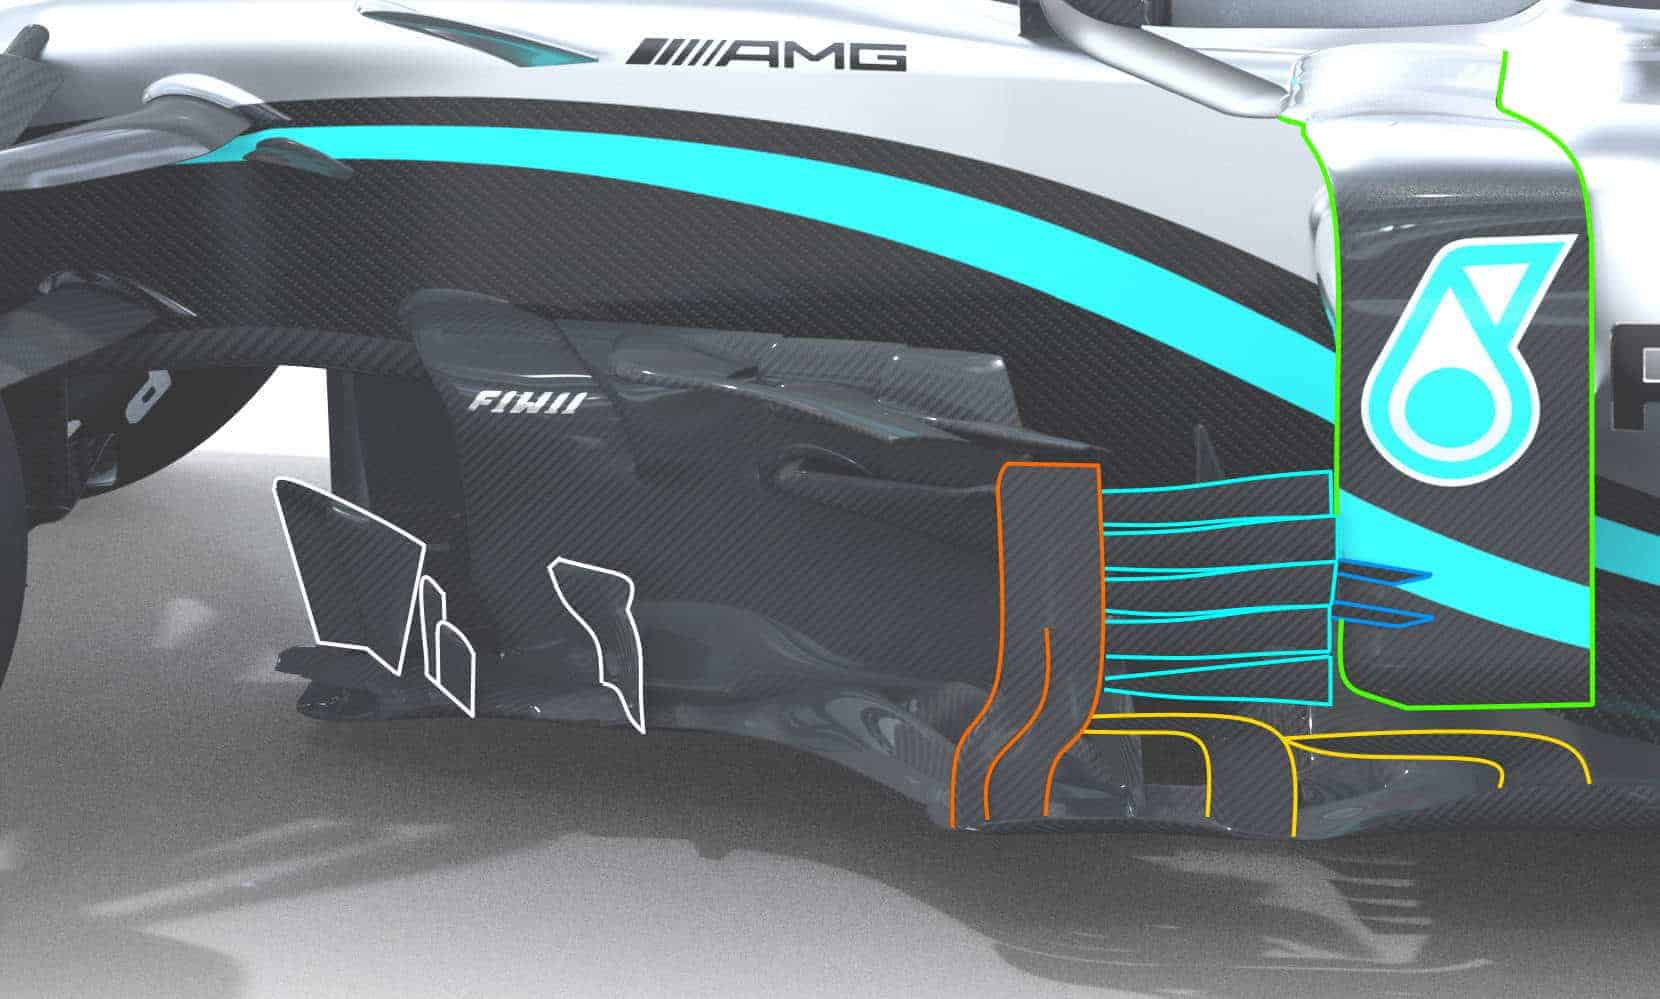 2020 F1 Mercedes F1 W11 front bargeboards behind front wheel side view Photo Daimler Edited by MAXF1net